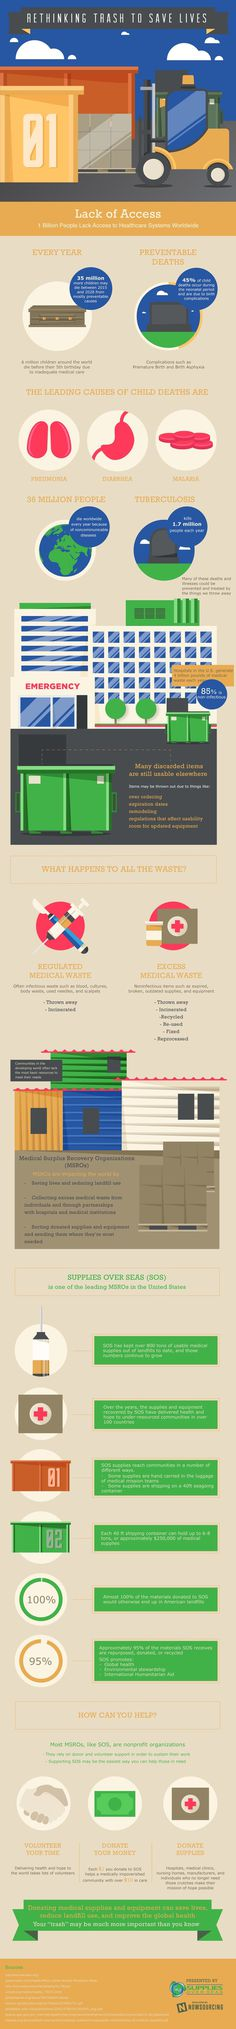 Learn how medical supply recovery operations can save lives from this infographic.  Trash can save lives!